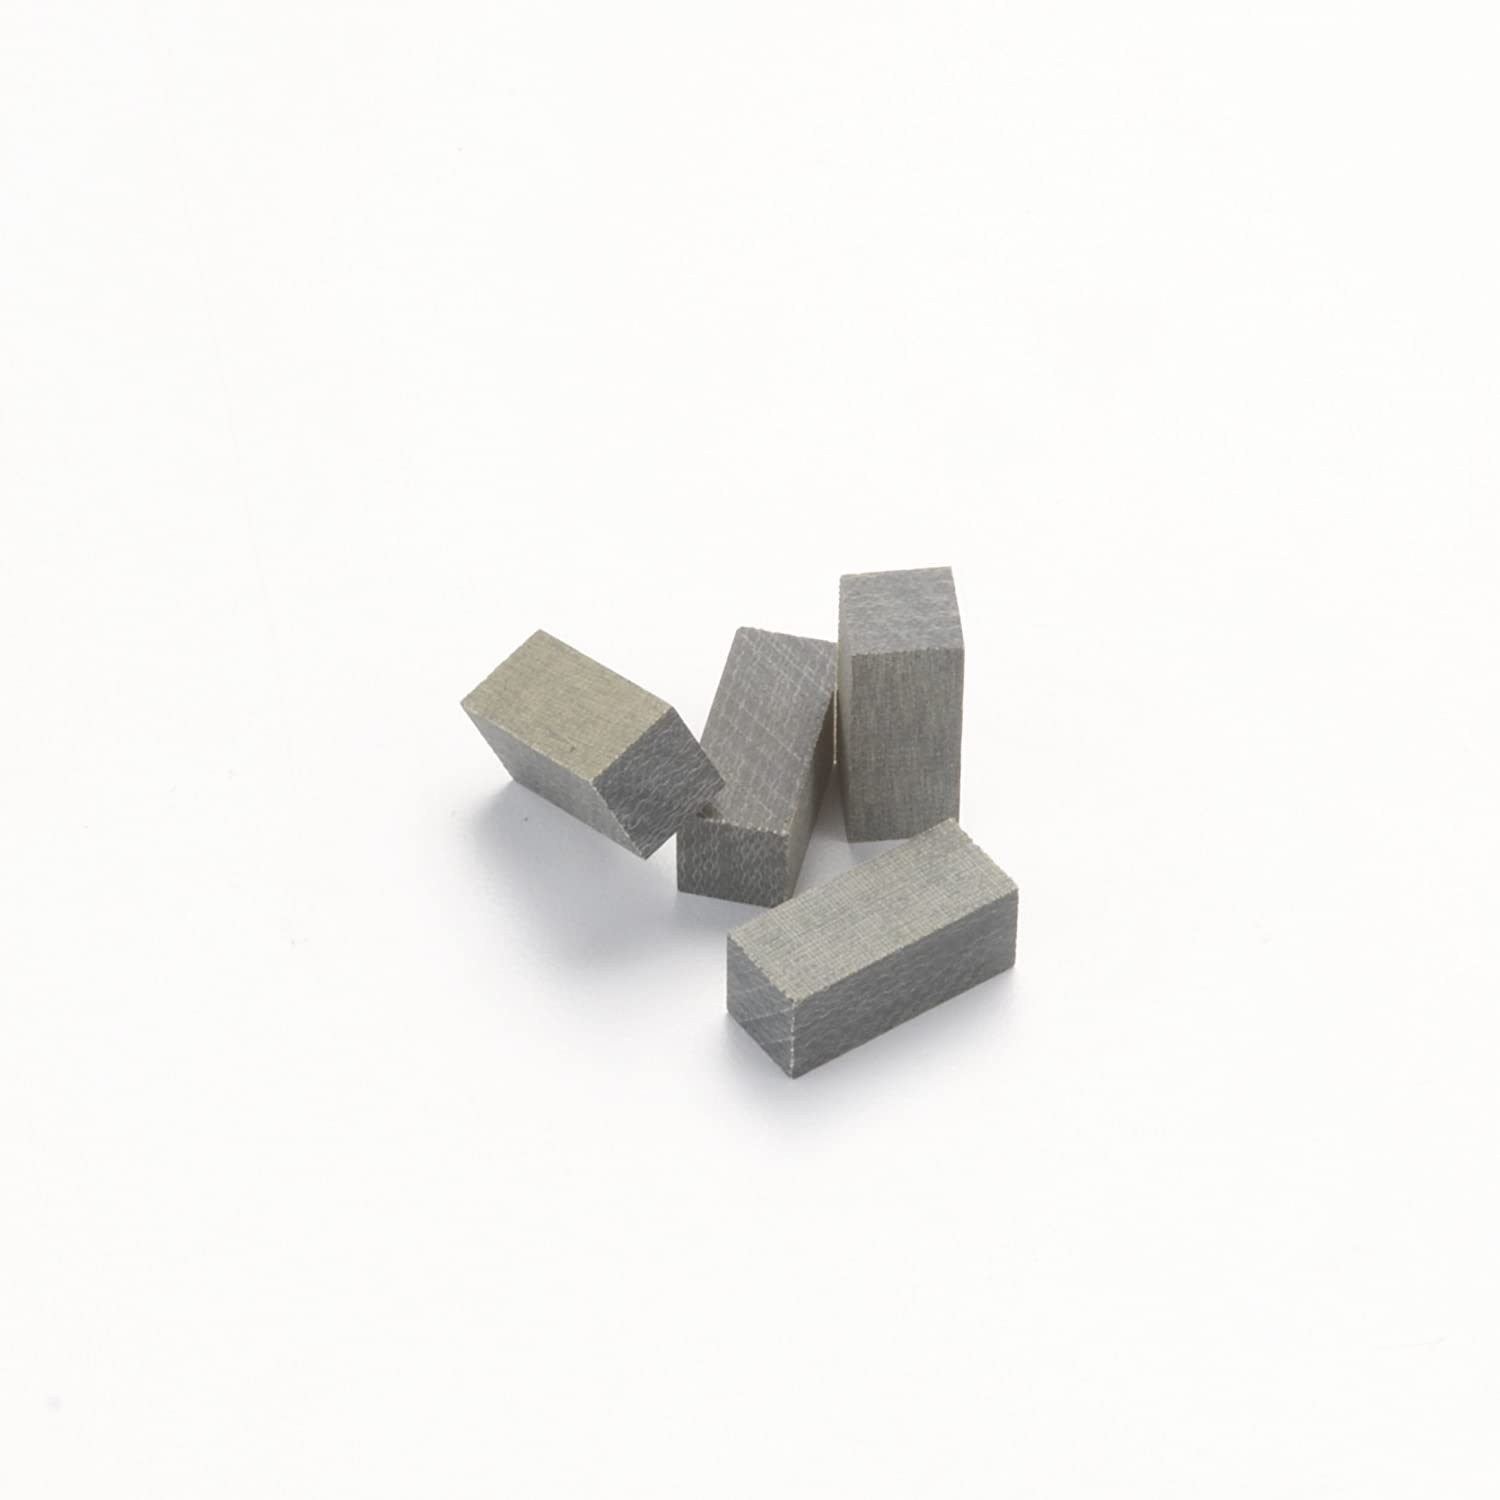 """Cool Blocks Bandsaw Blade Guide Block Size 3/8"""" x 3/8"""""""